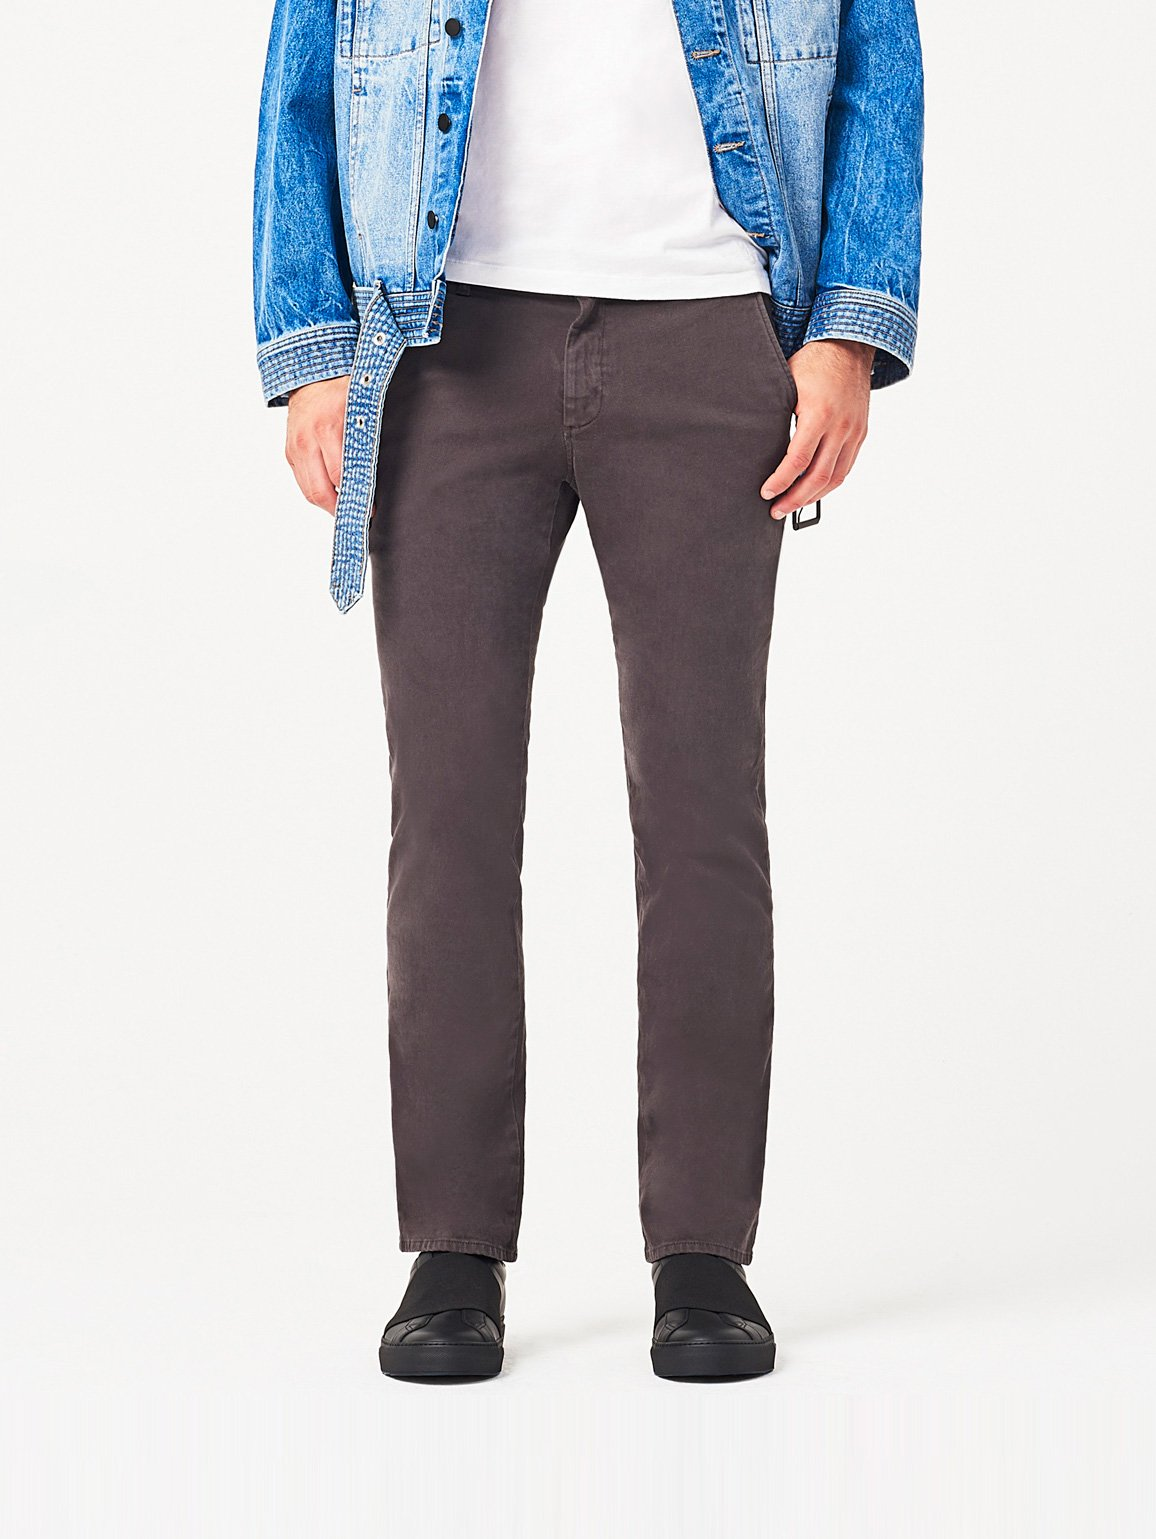 Men - Duke Slim Chino Mortar - DL1961